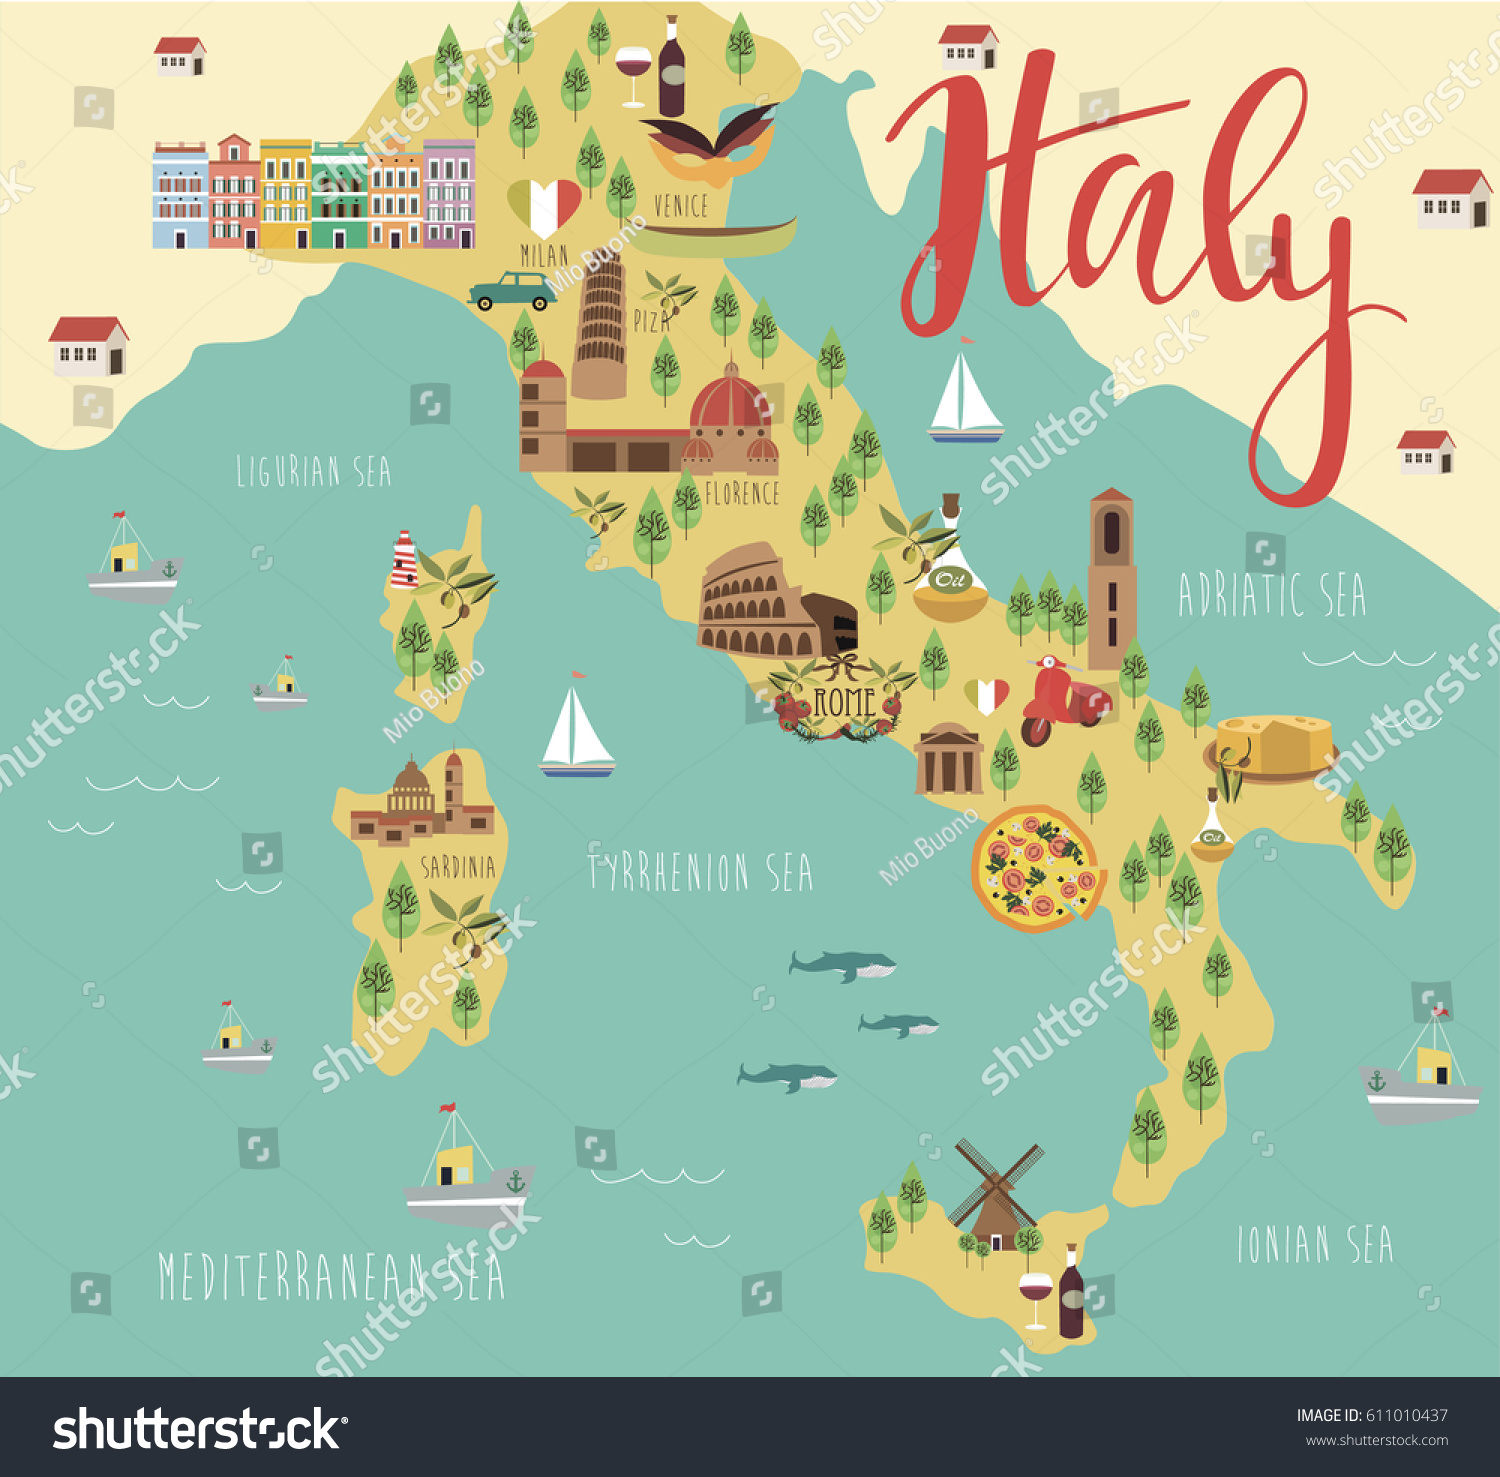 Illustration Map Italy Animals Landmarks Vector Stock Vector ... on map travel, medical illustration, map art, map of victoria, map of belfast and surrounding areas, map paper, map background, map great britain, map of spanish speaking world, technical illustration, map infographic, map key, map print, product illustration, map books, map of california and mexico, map making, map of the south sewanee university, map cartoon, digital illustration, map app, map of louisiana and mississippi, map clipart, architectural illustration, map design,